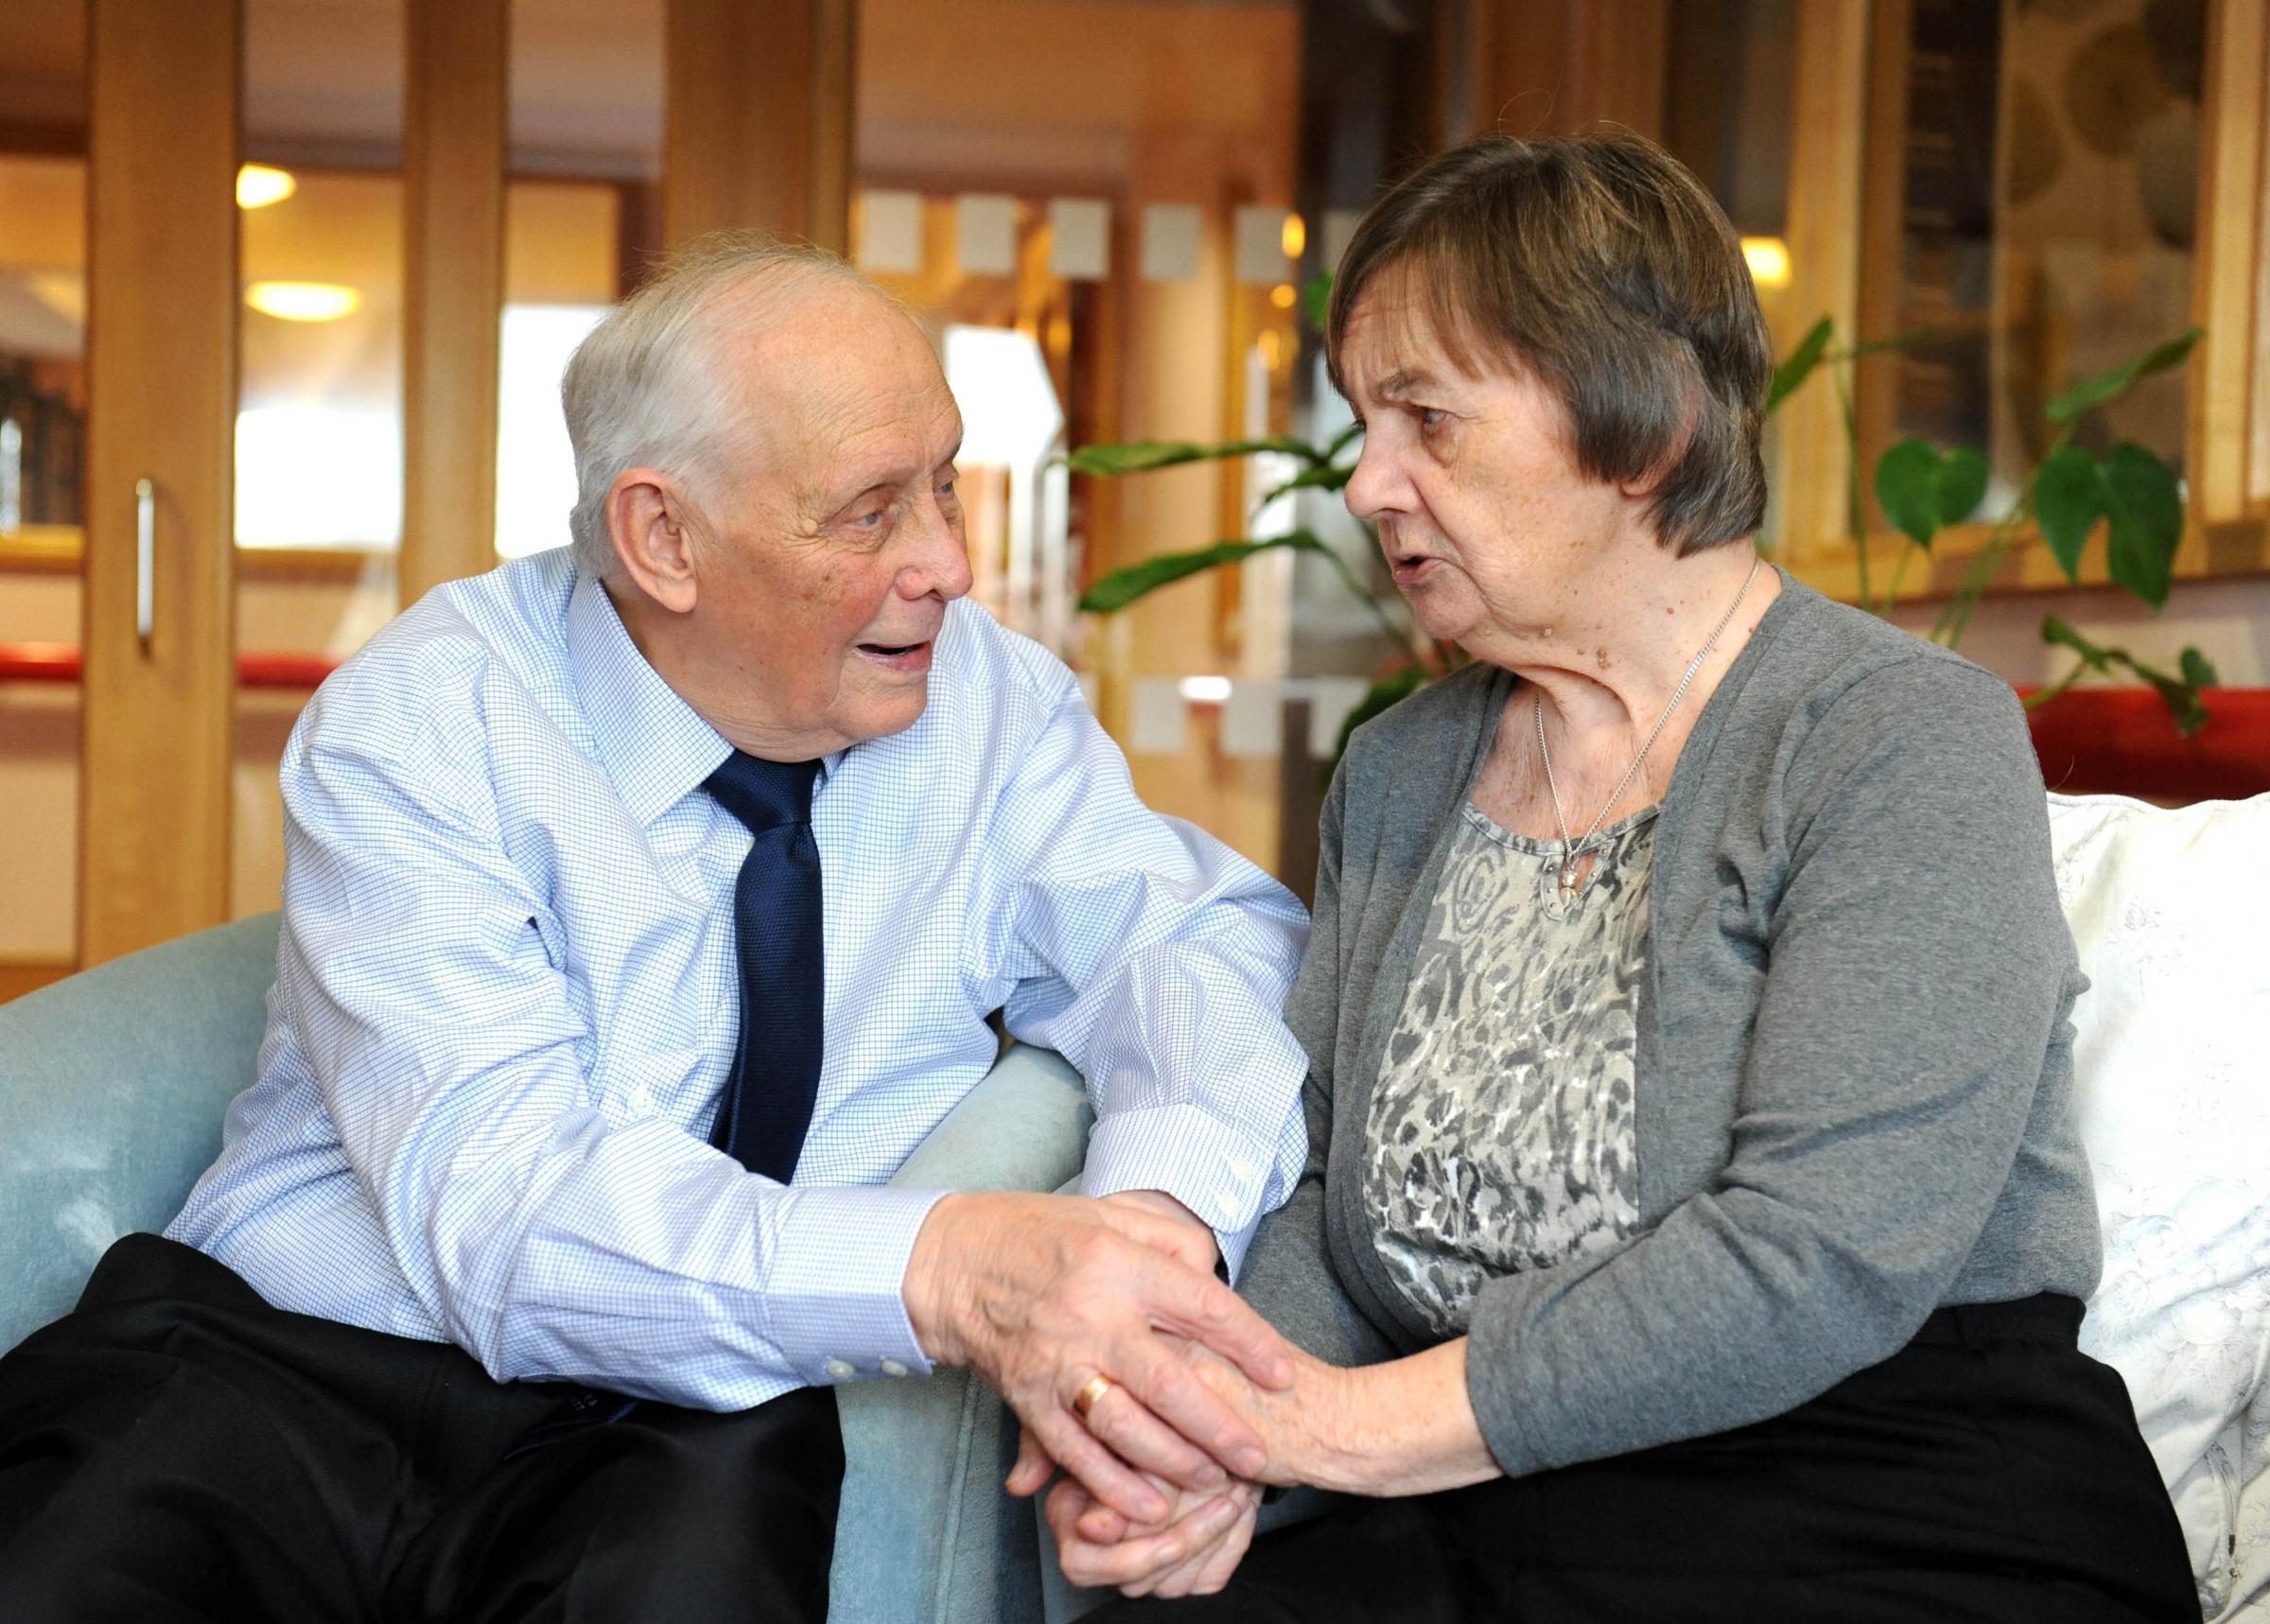 50 first dates: Doting husband visits wife in care home each day knowing she may not remember him